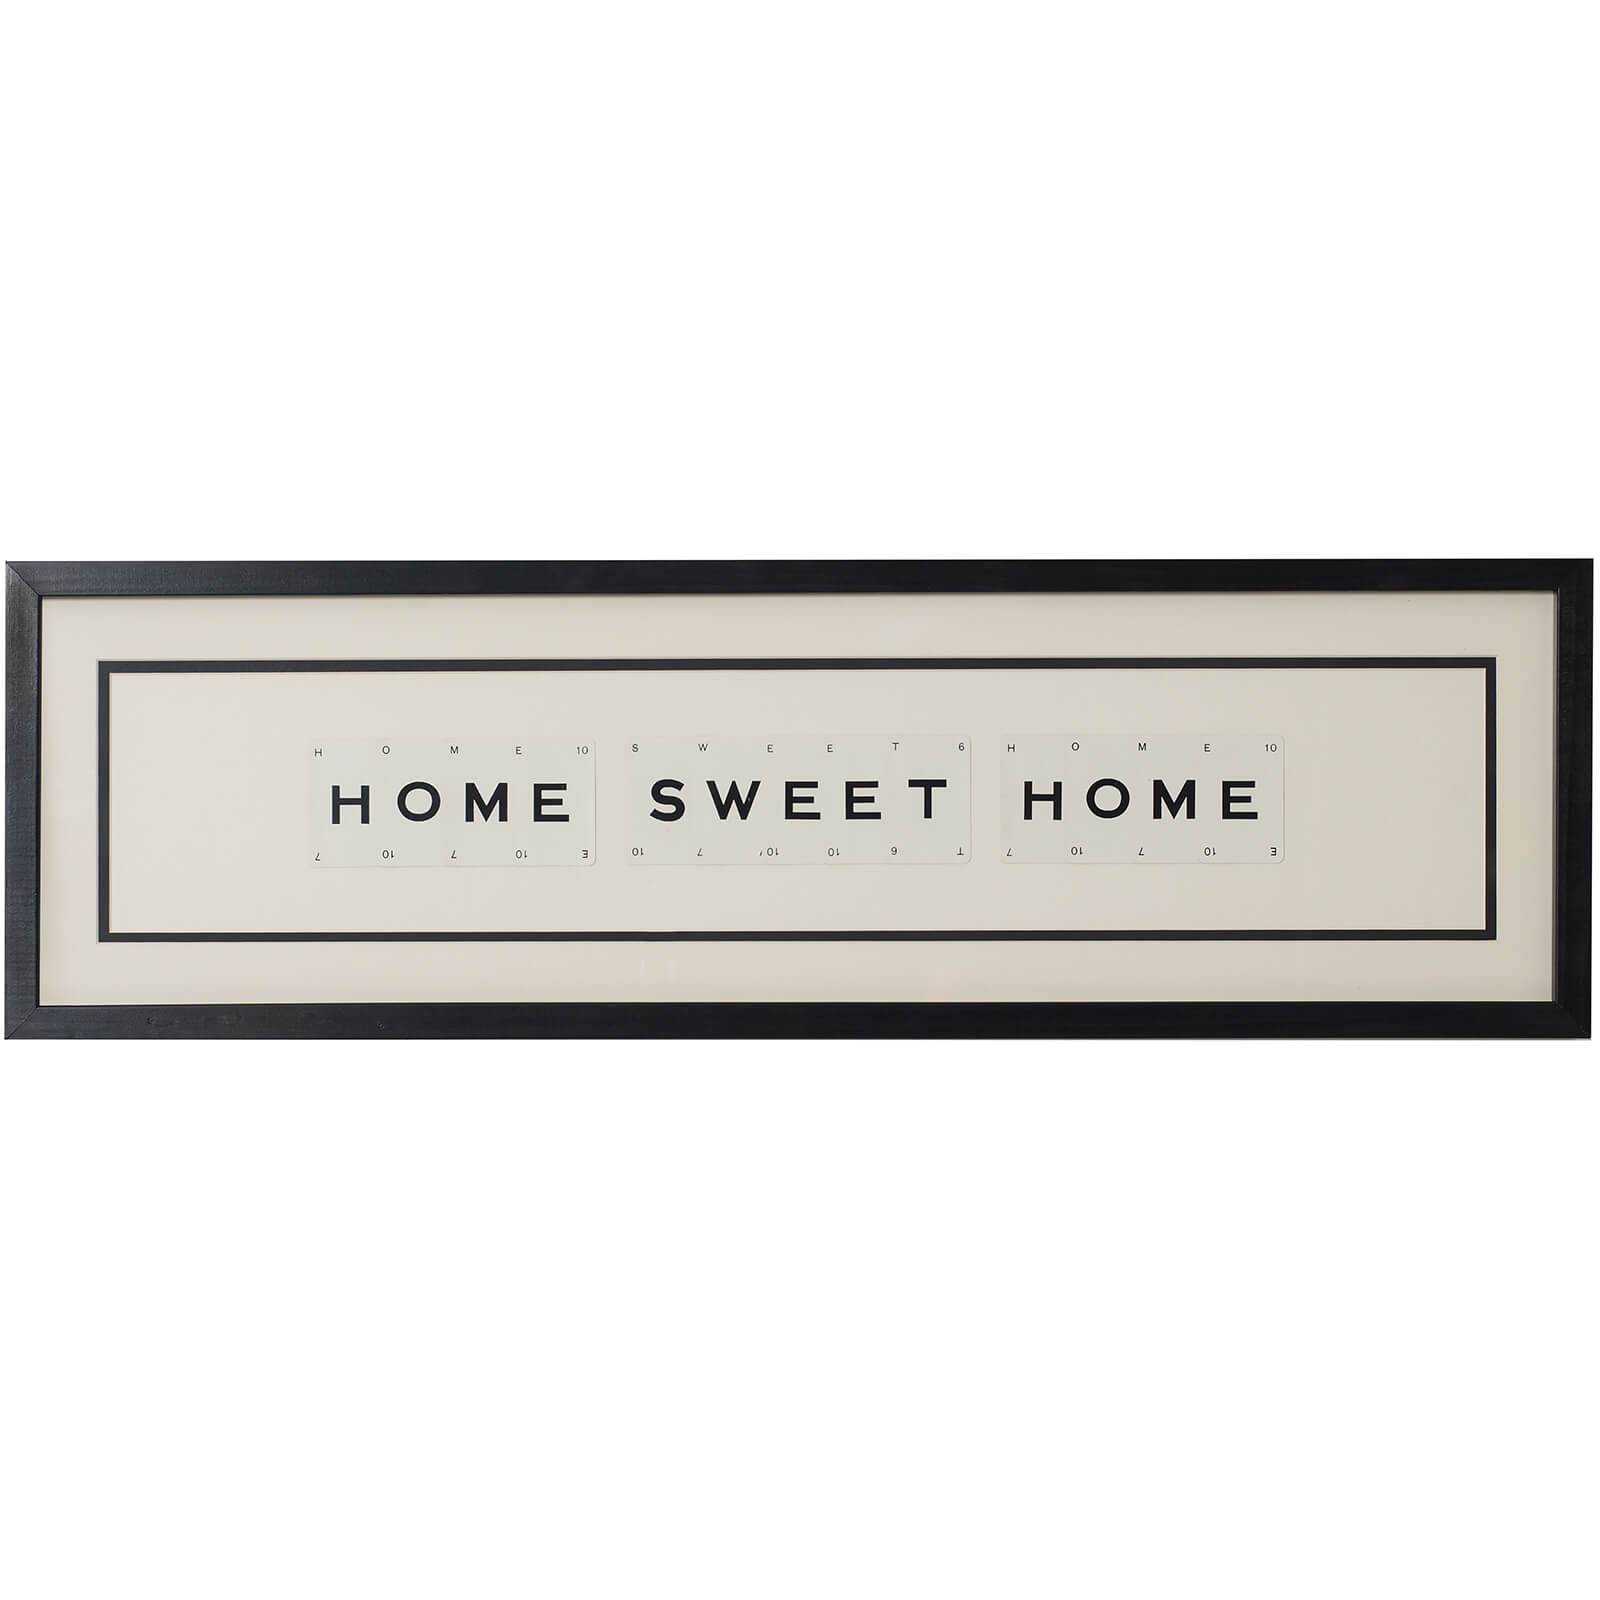 Vintage Playing Cards Home Sweet Home Framed Wall Art